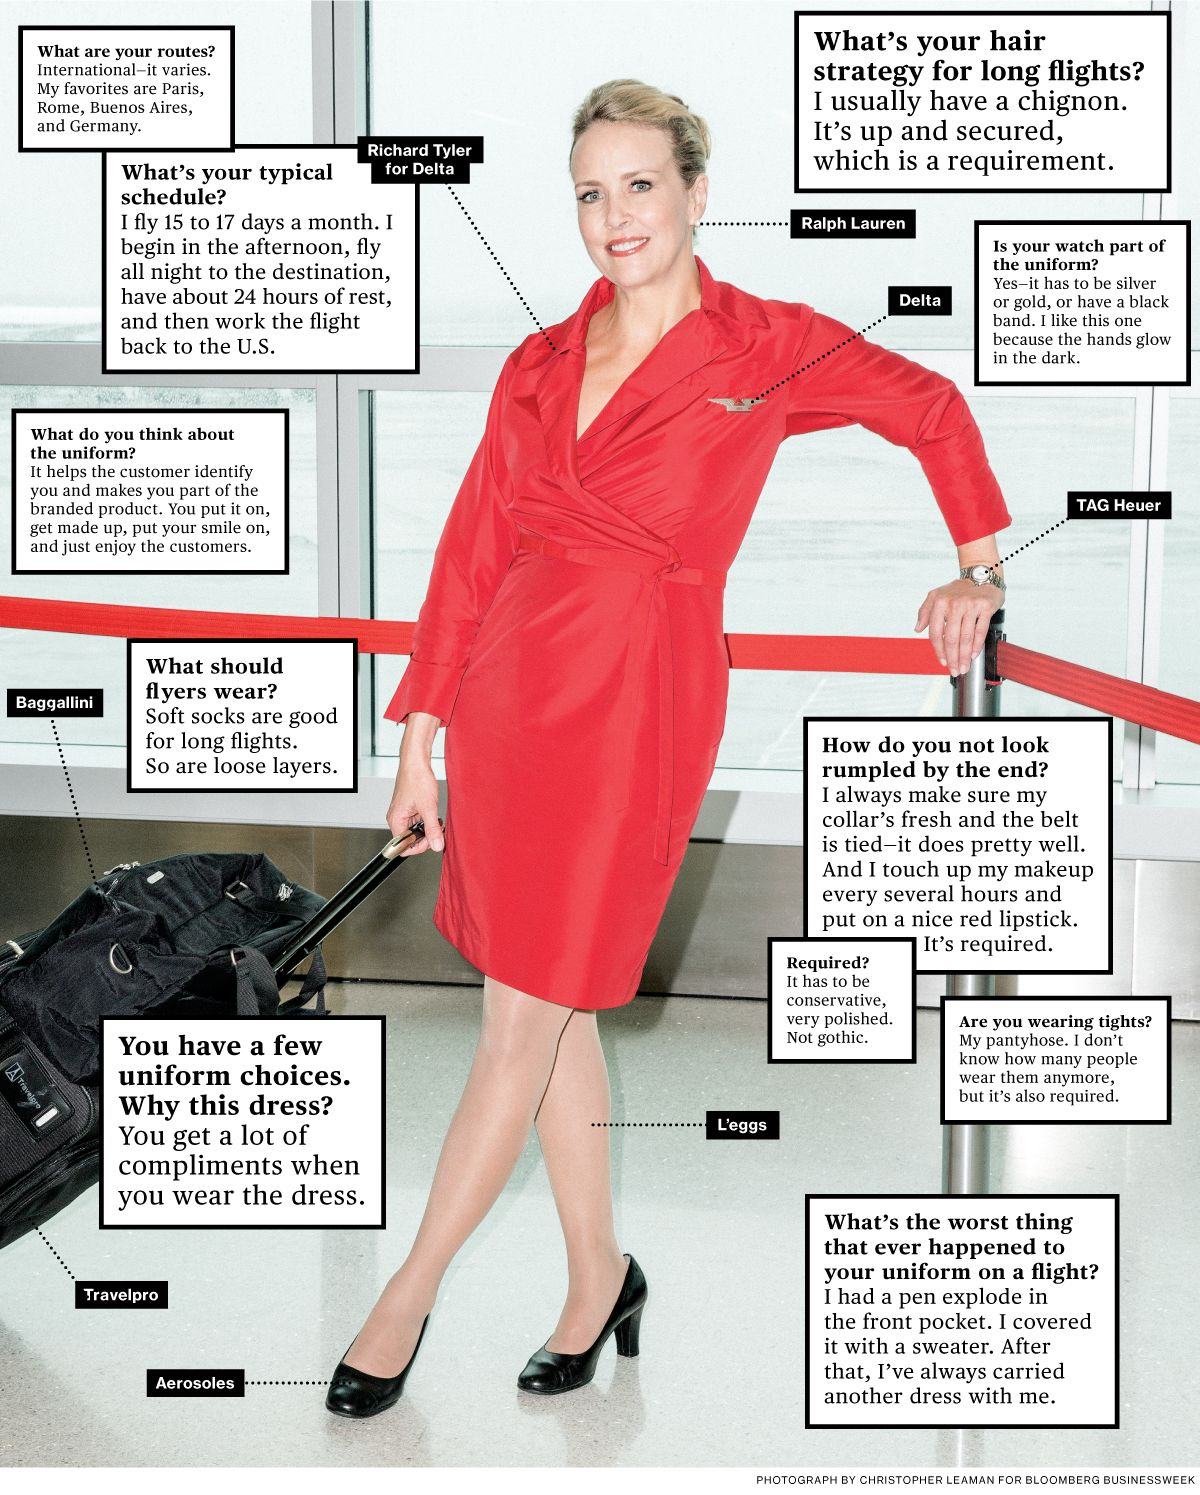 how to become a flight attendant for delta